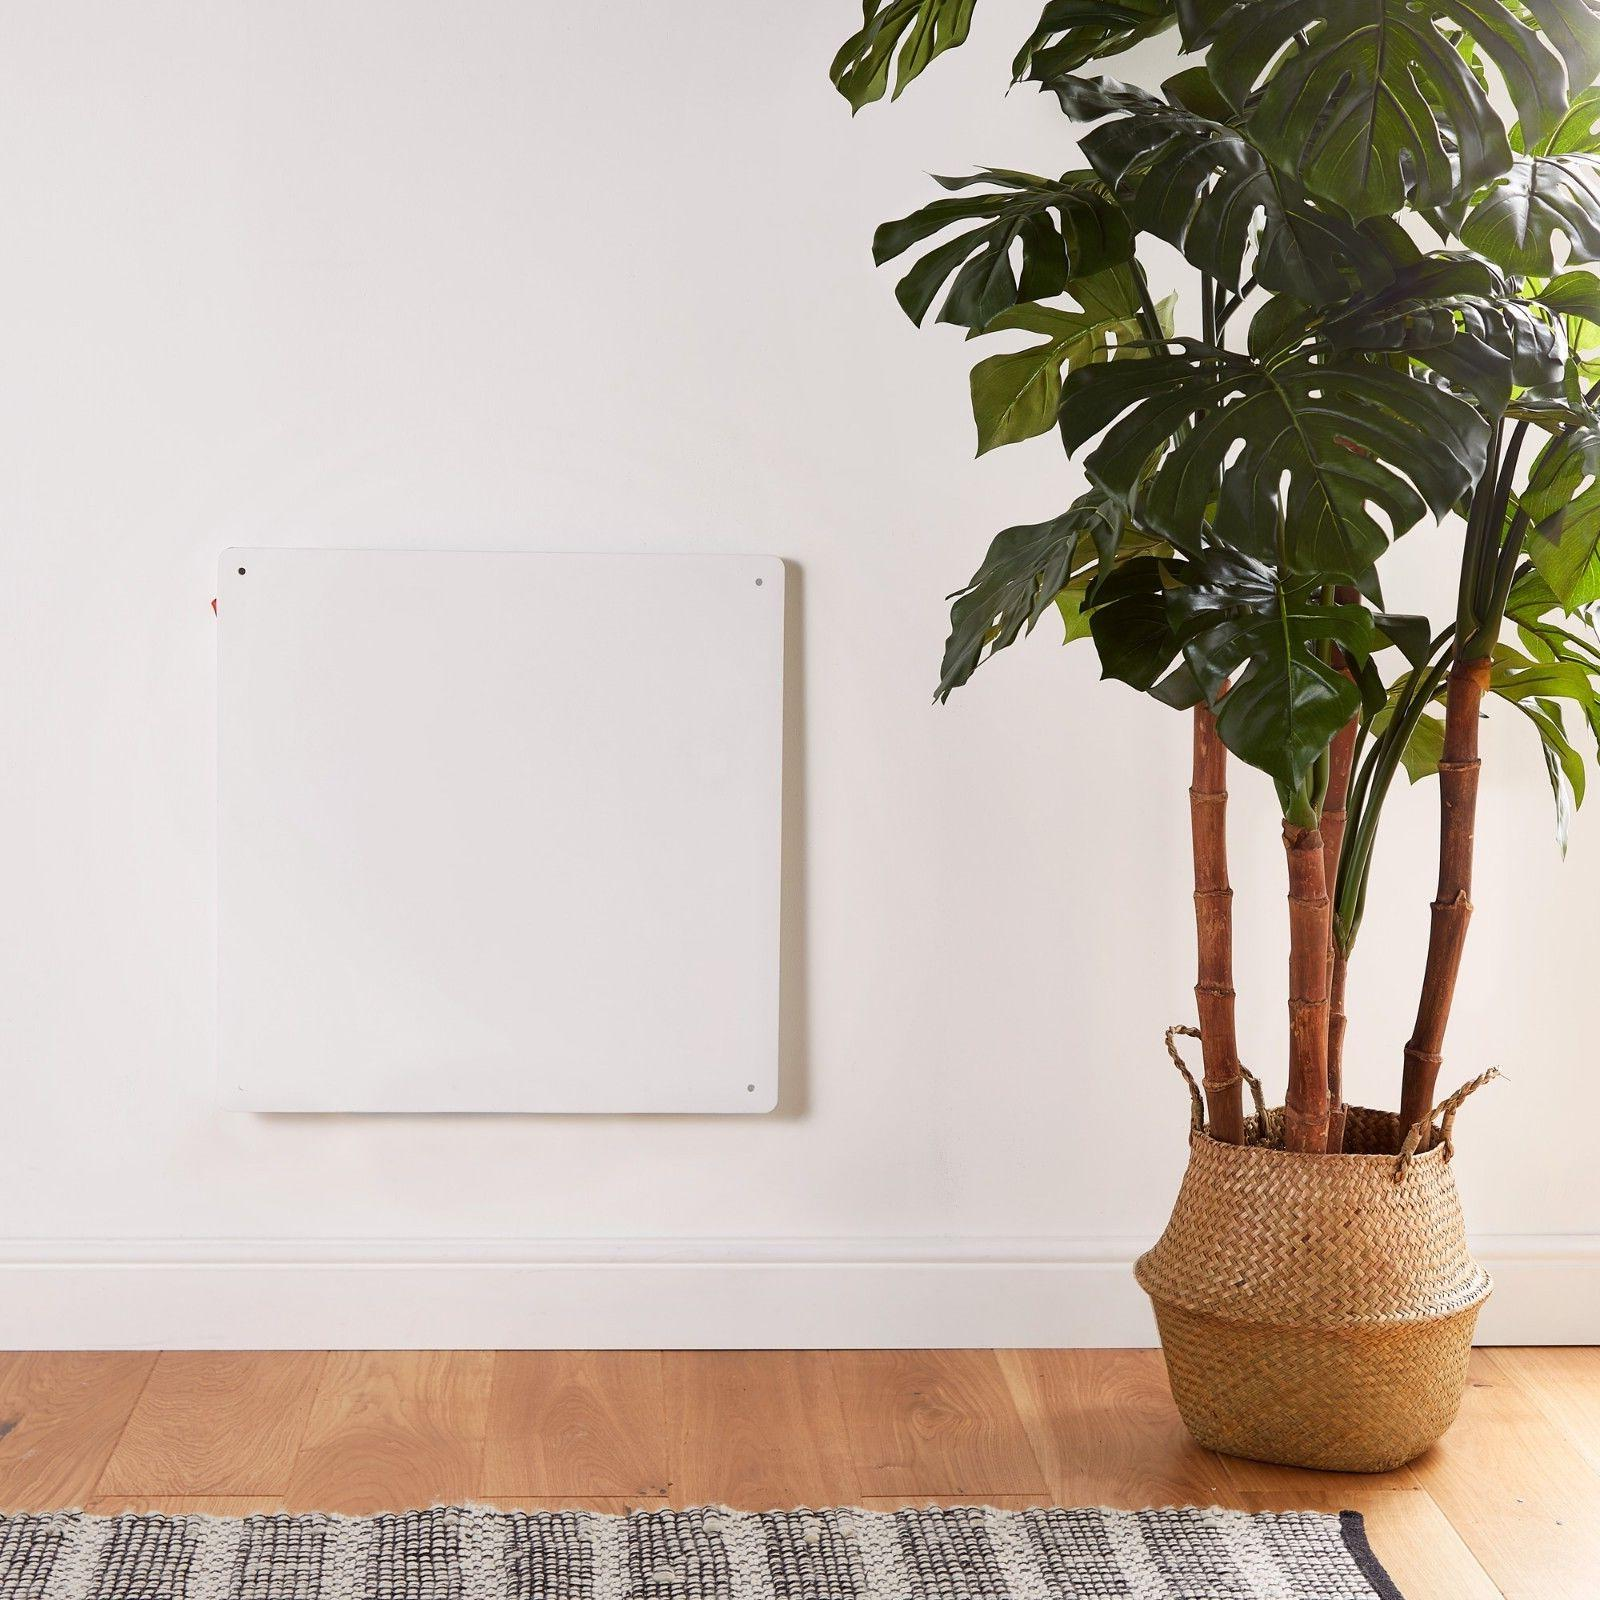 VonHaus Wall Mountable Electric Panel Heater Eco